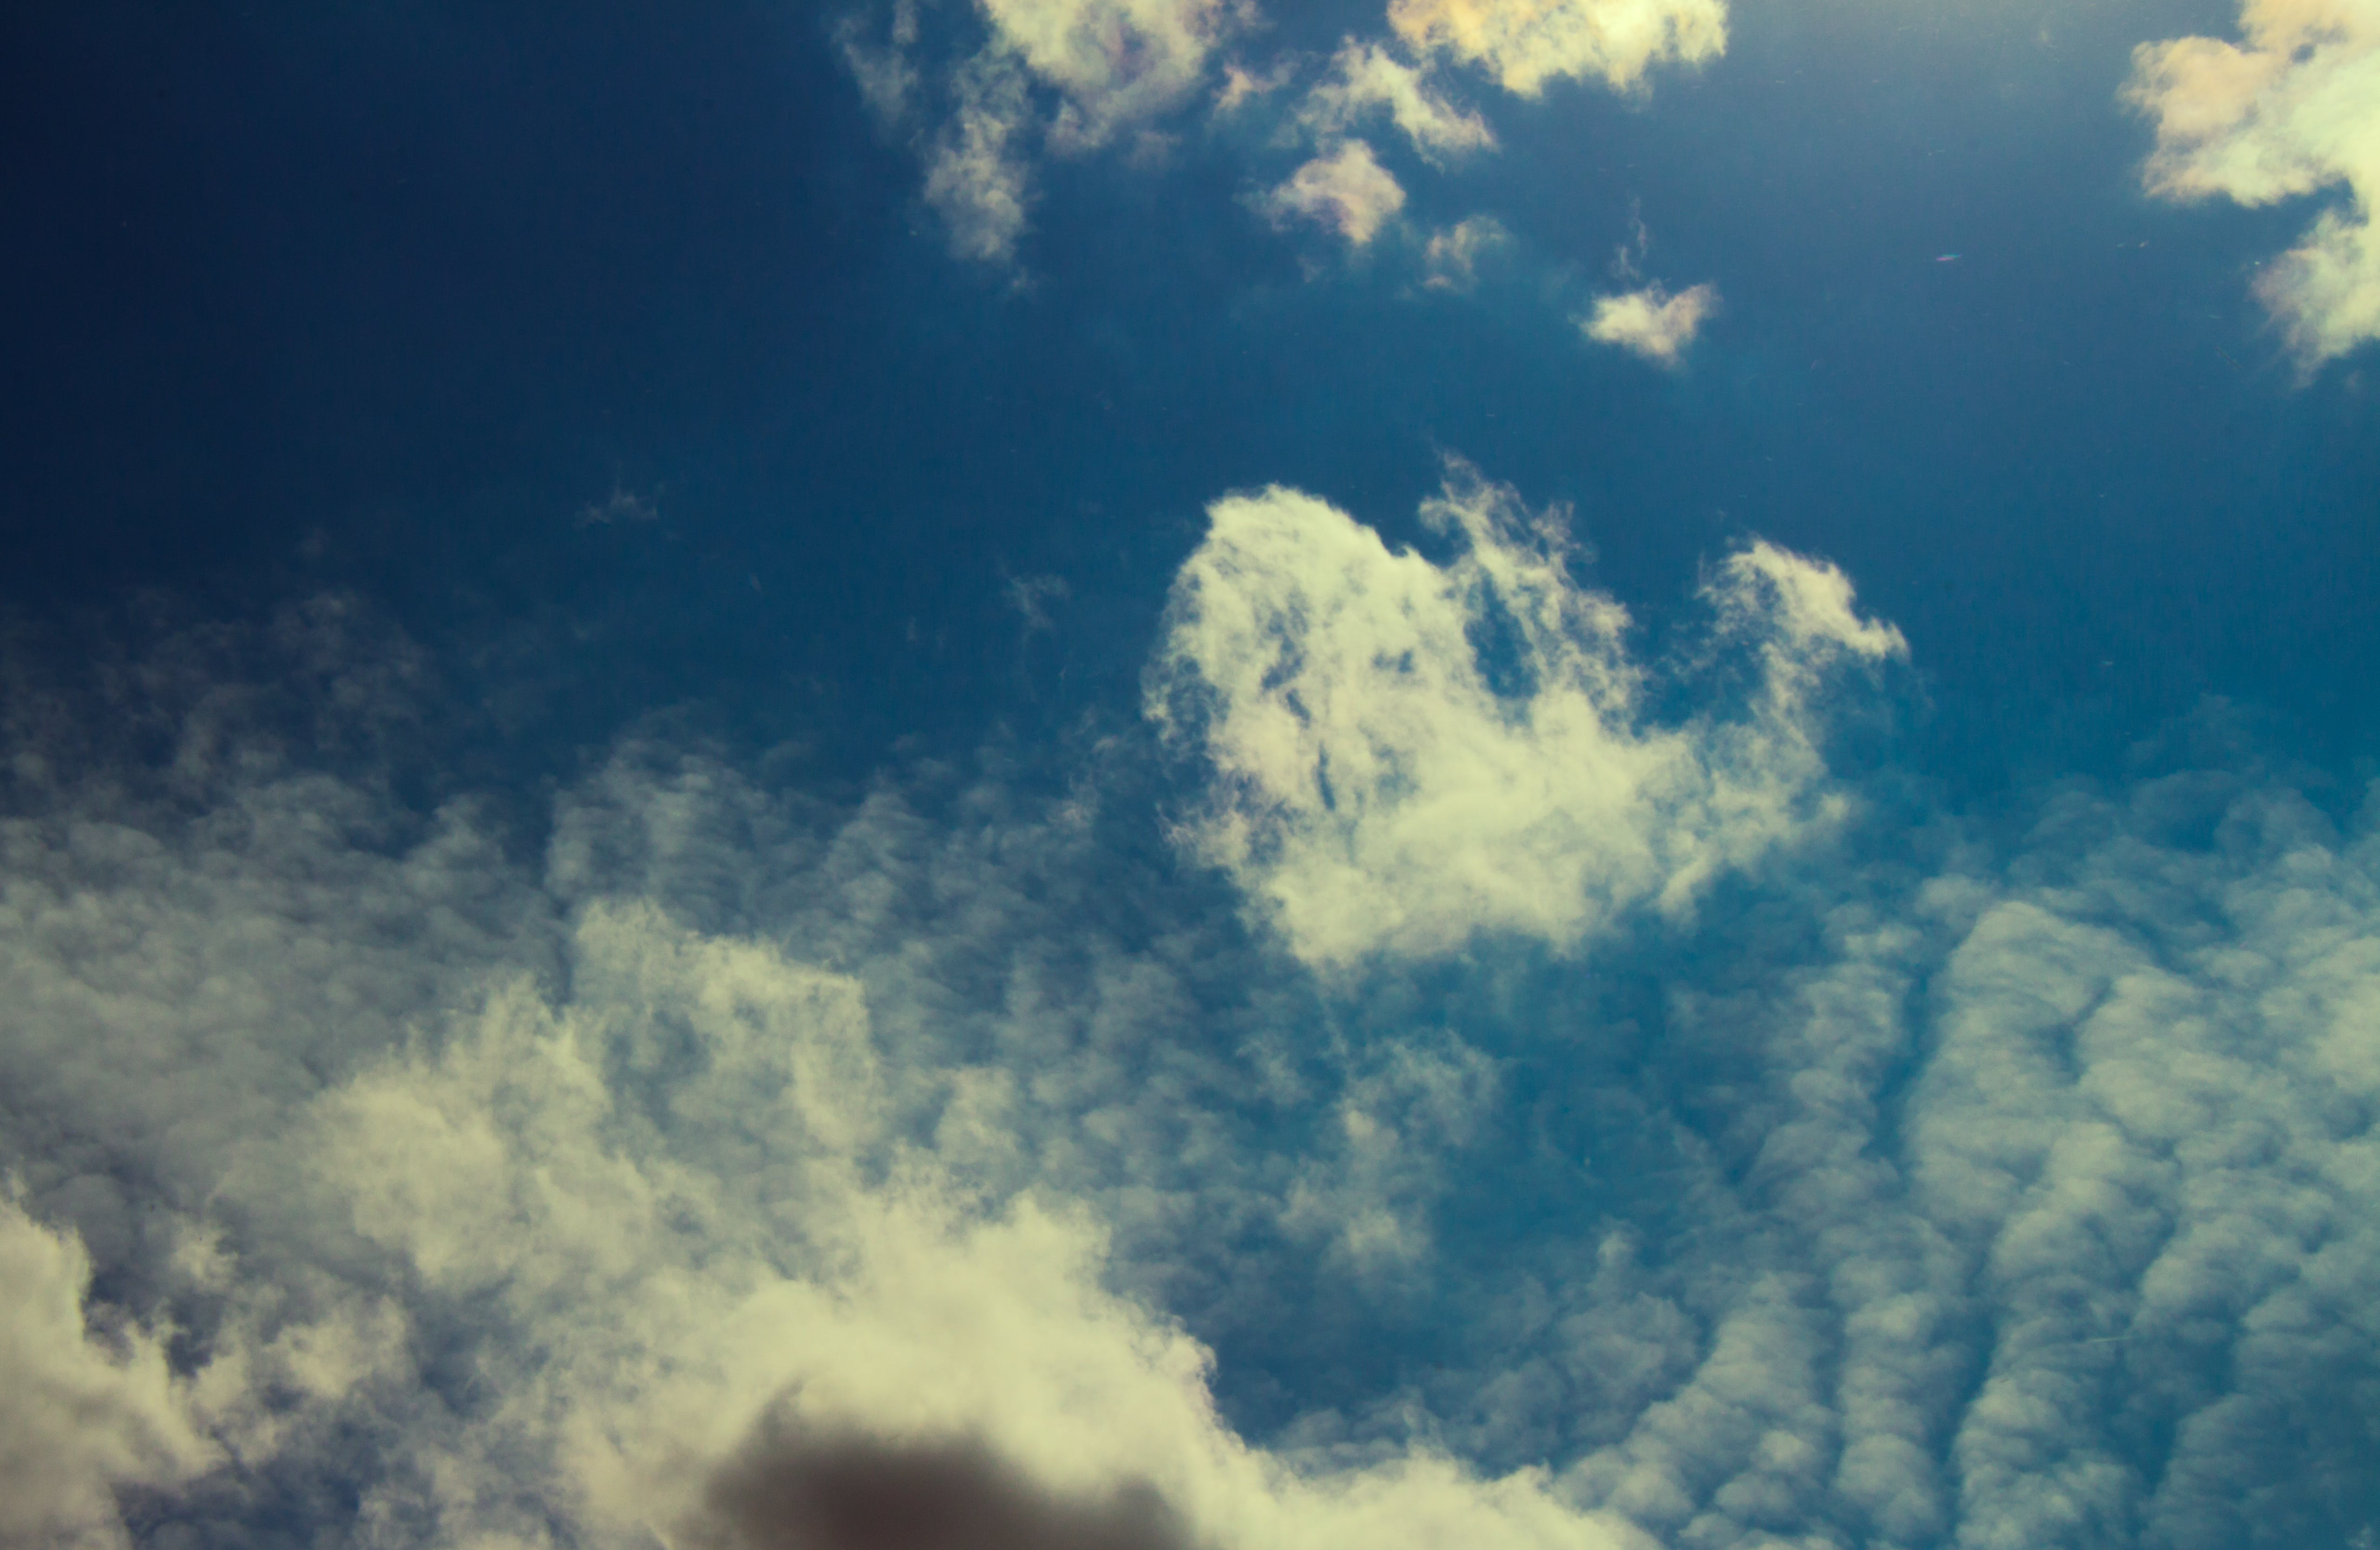 Free stock photo of nature, sky, clouds, high